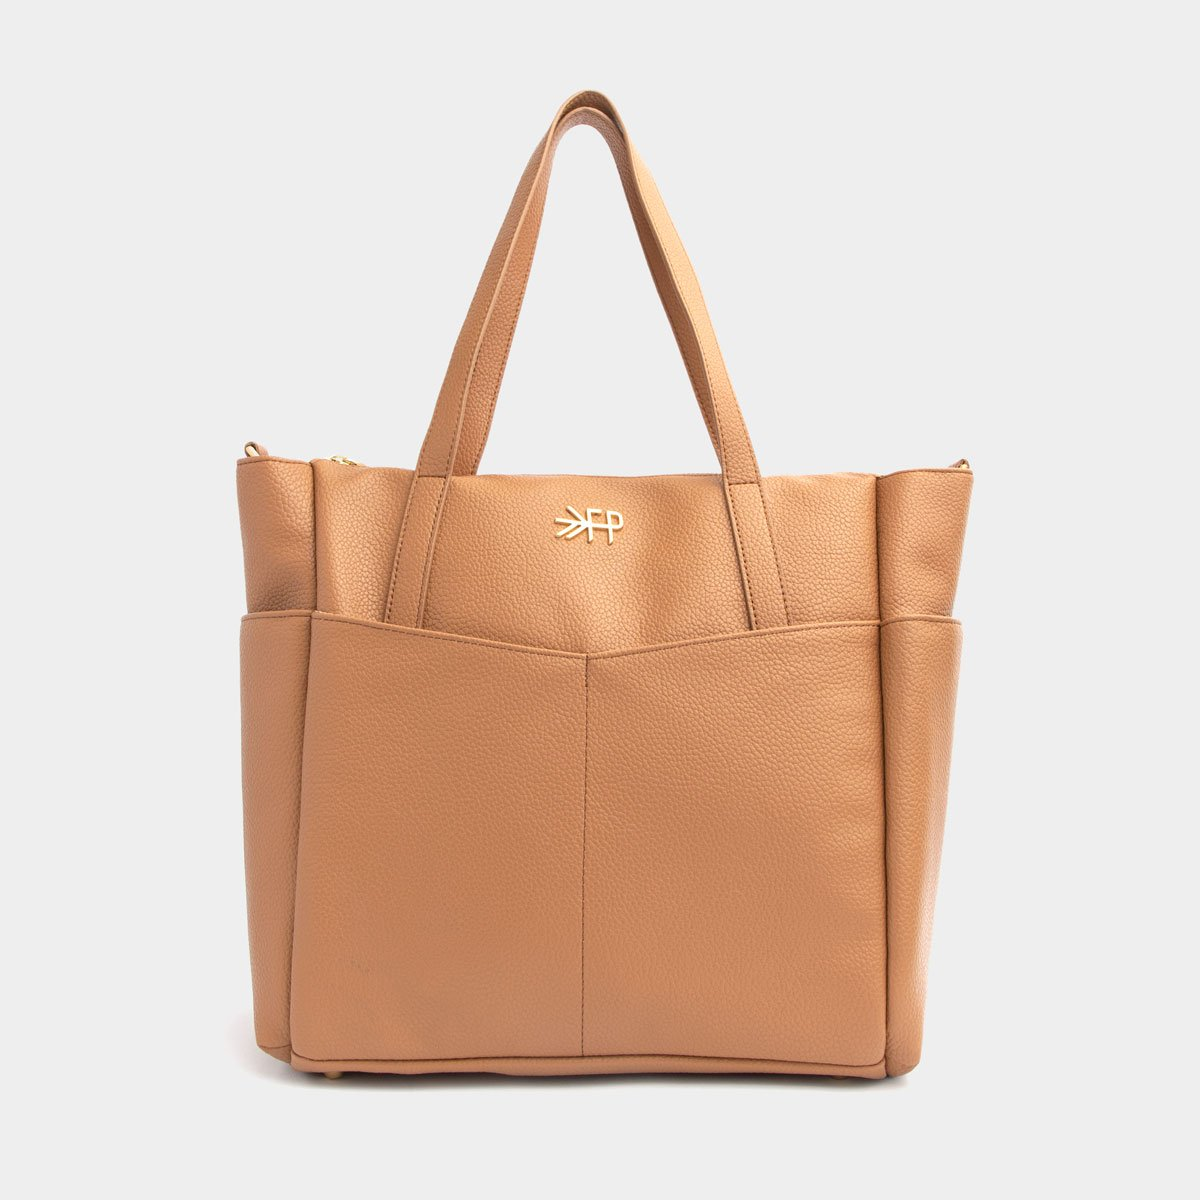 Freshly Picked Butterscotch Classic Carryall - $175.00